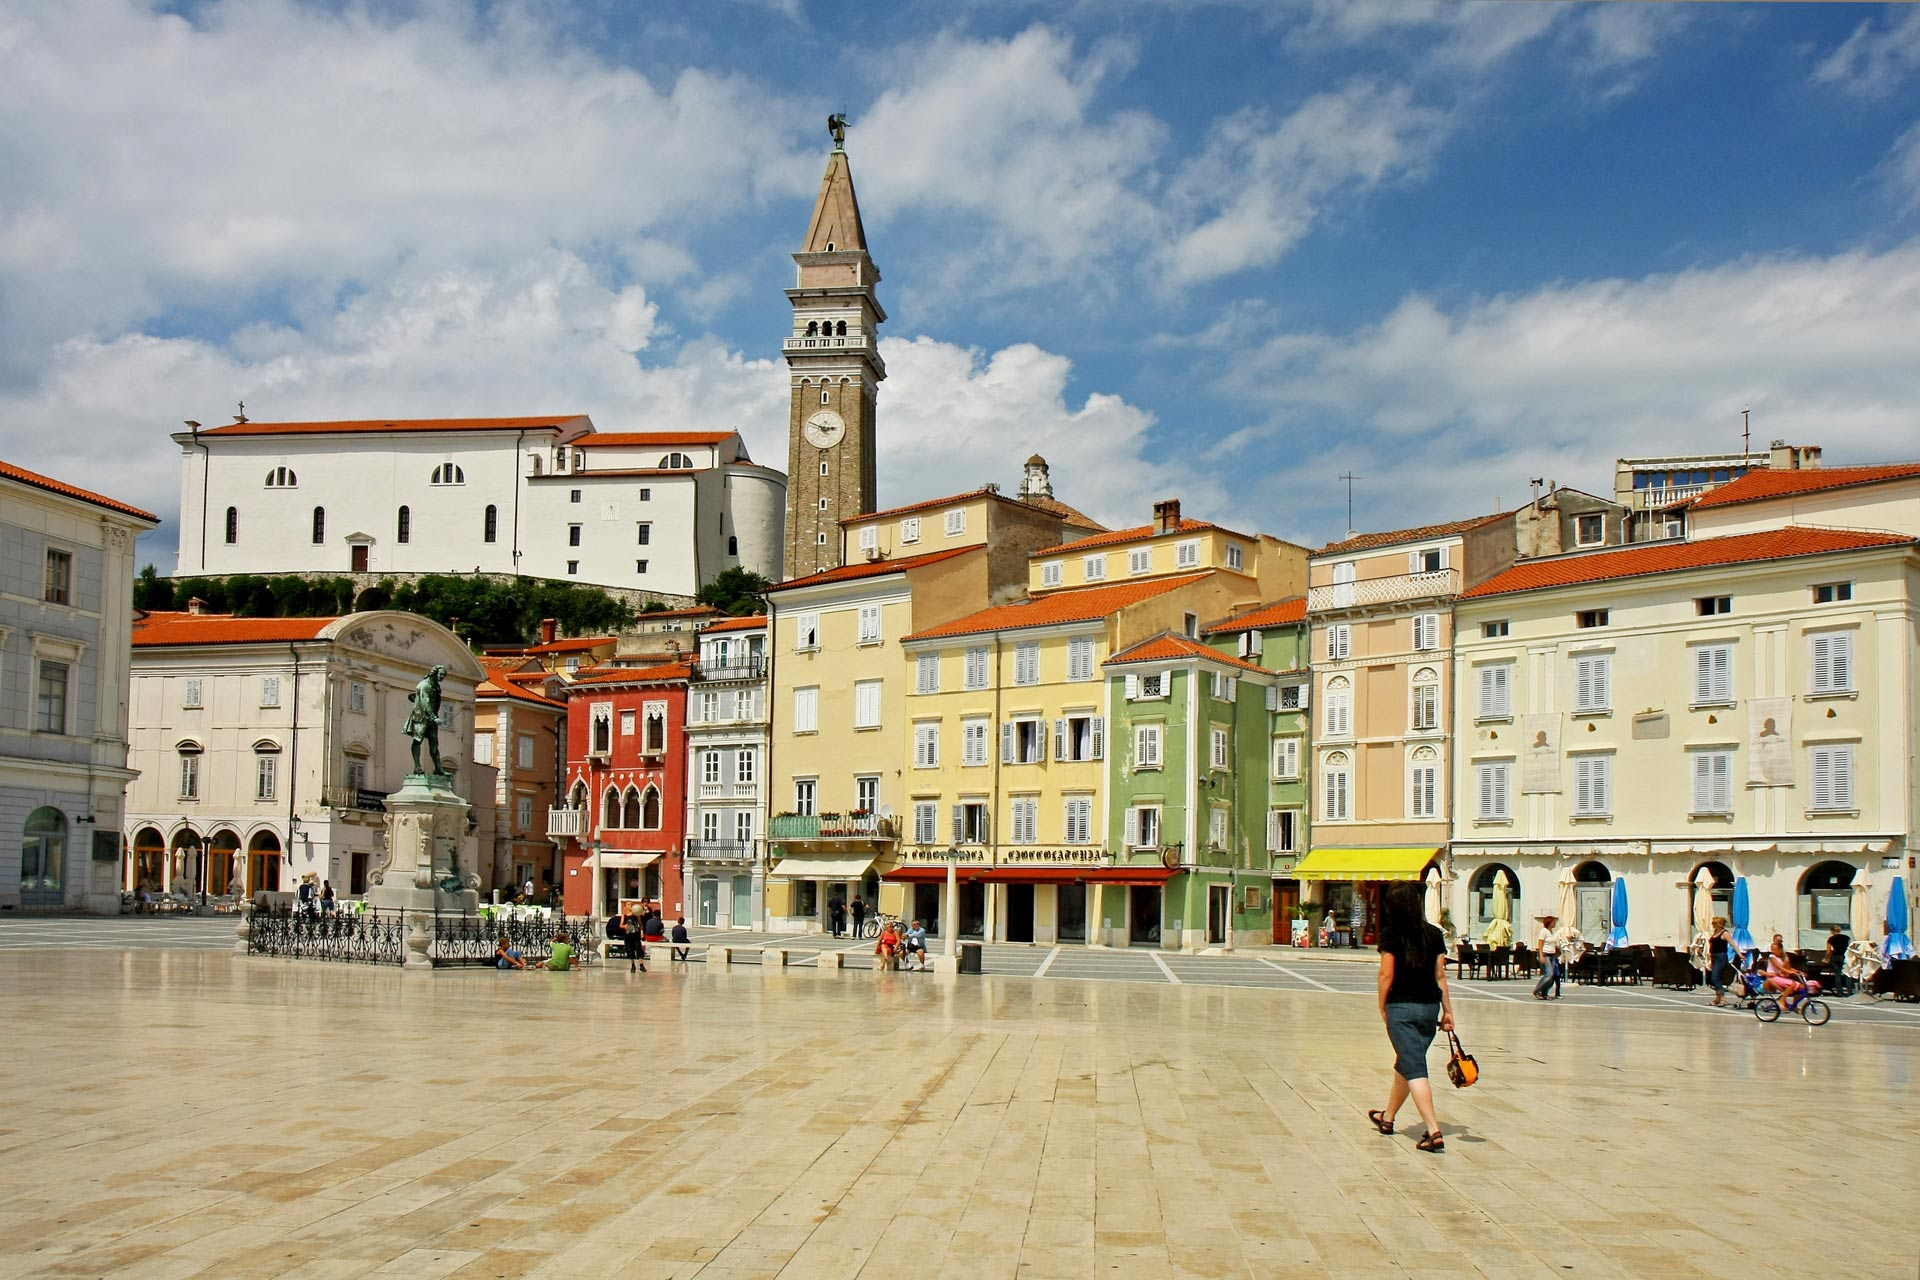 Tartini Square and Statue of Giuseppe Tartini overlooked by the venetian belfry of Saint George cathedral, Piran, Slovenia